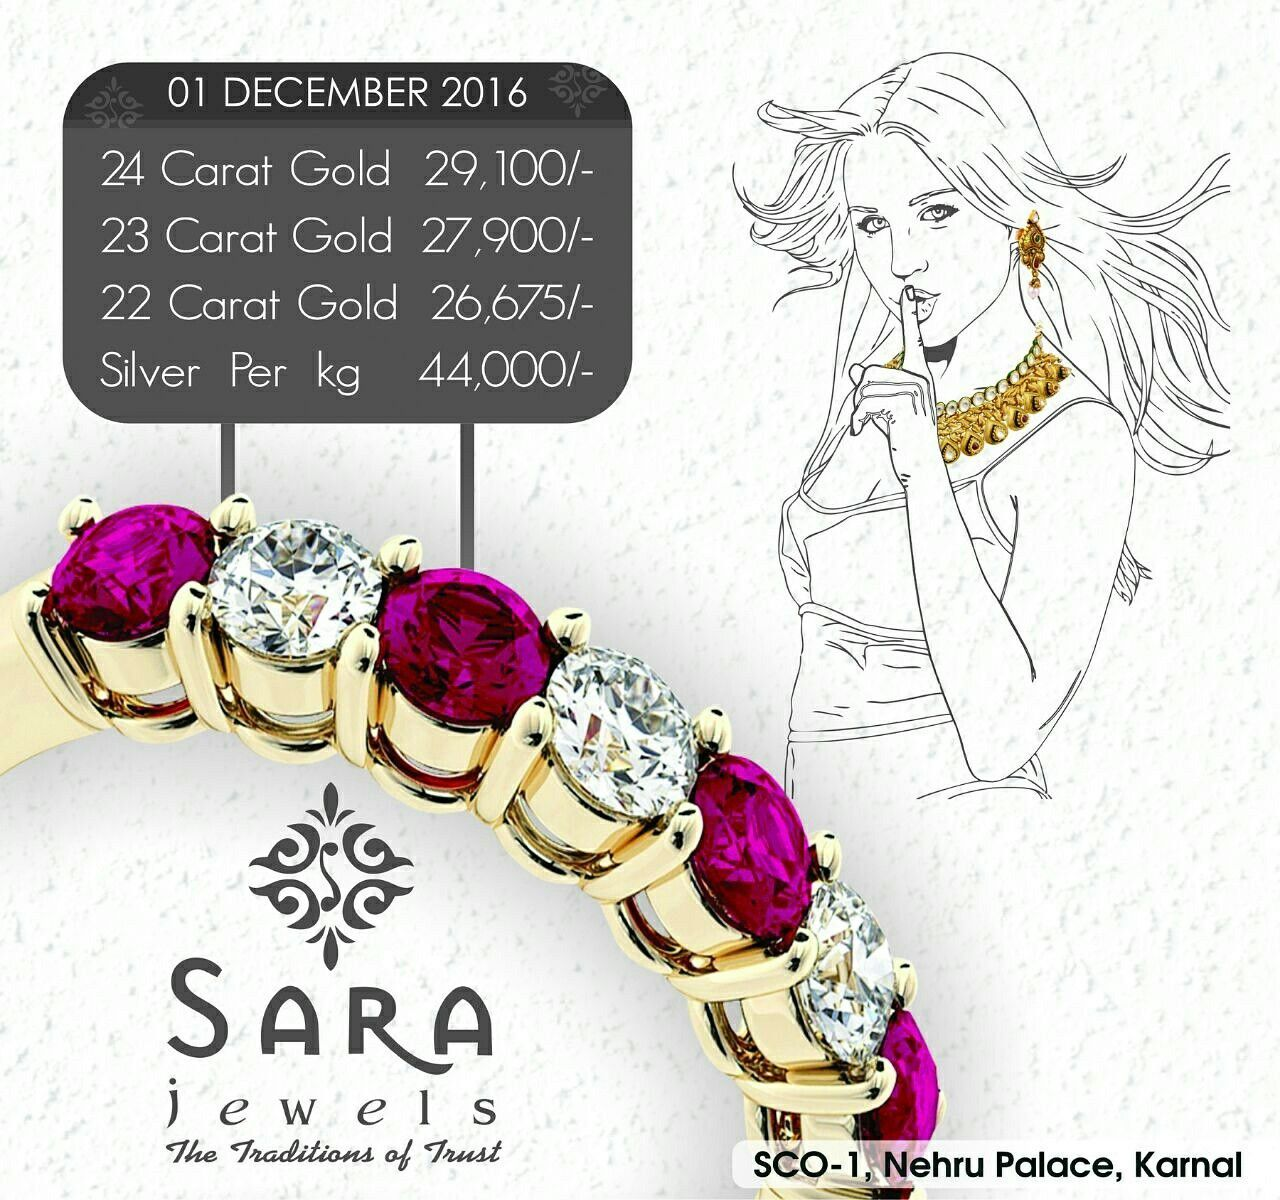 Sara Jewels The Tradition Of Trust Dec 1 2016 Rate Gold 24 Carat 29100 23 Carat 27900 22 Carat 26675 Silver 44000 Gold Rate 22 Carat Gold Gold